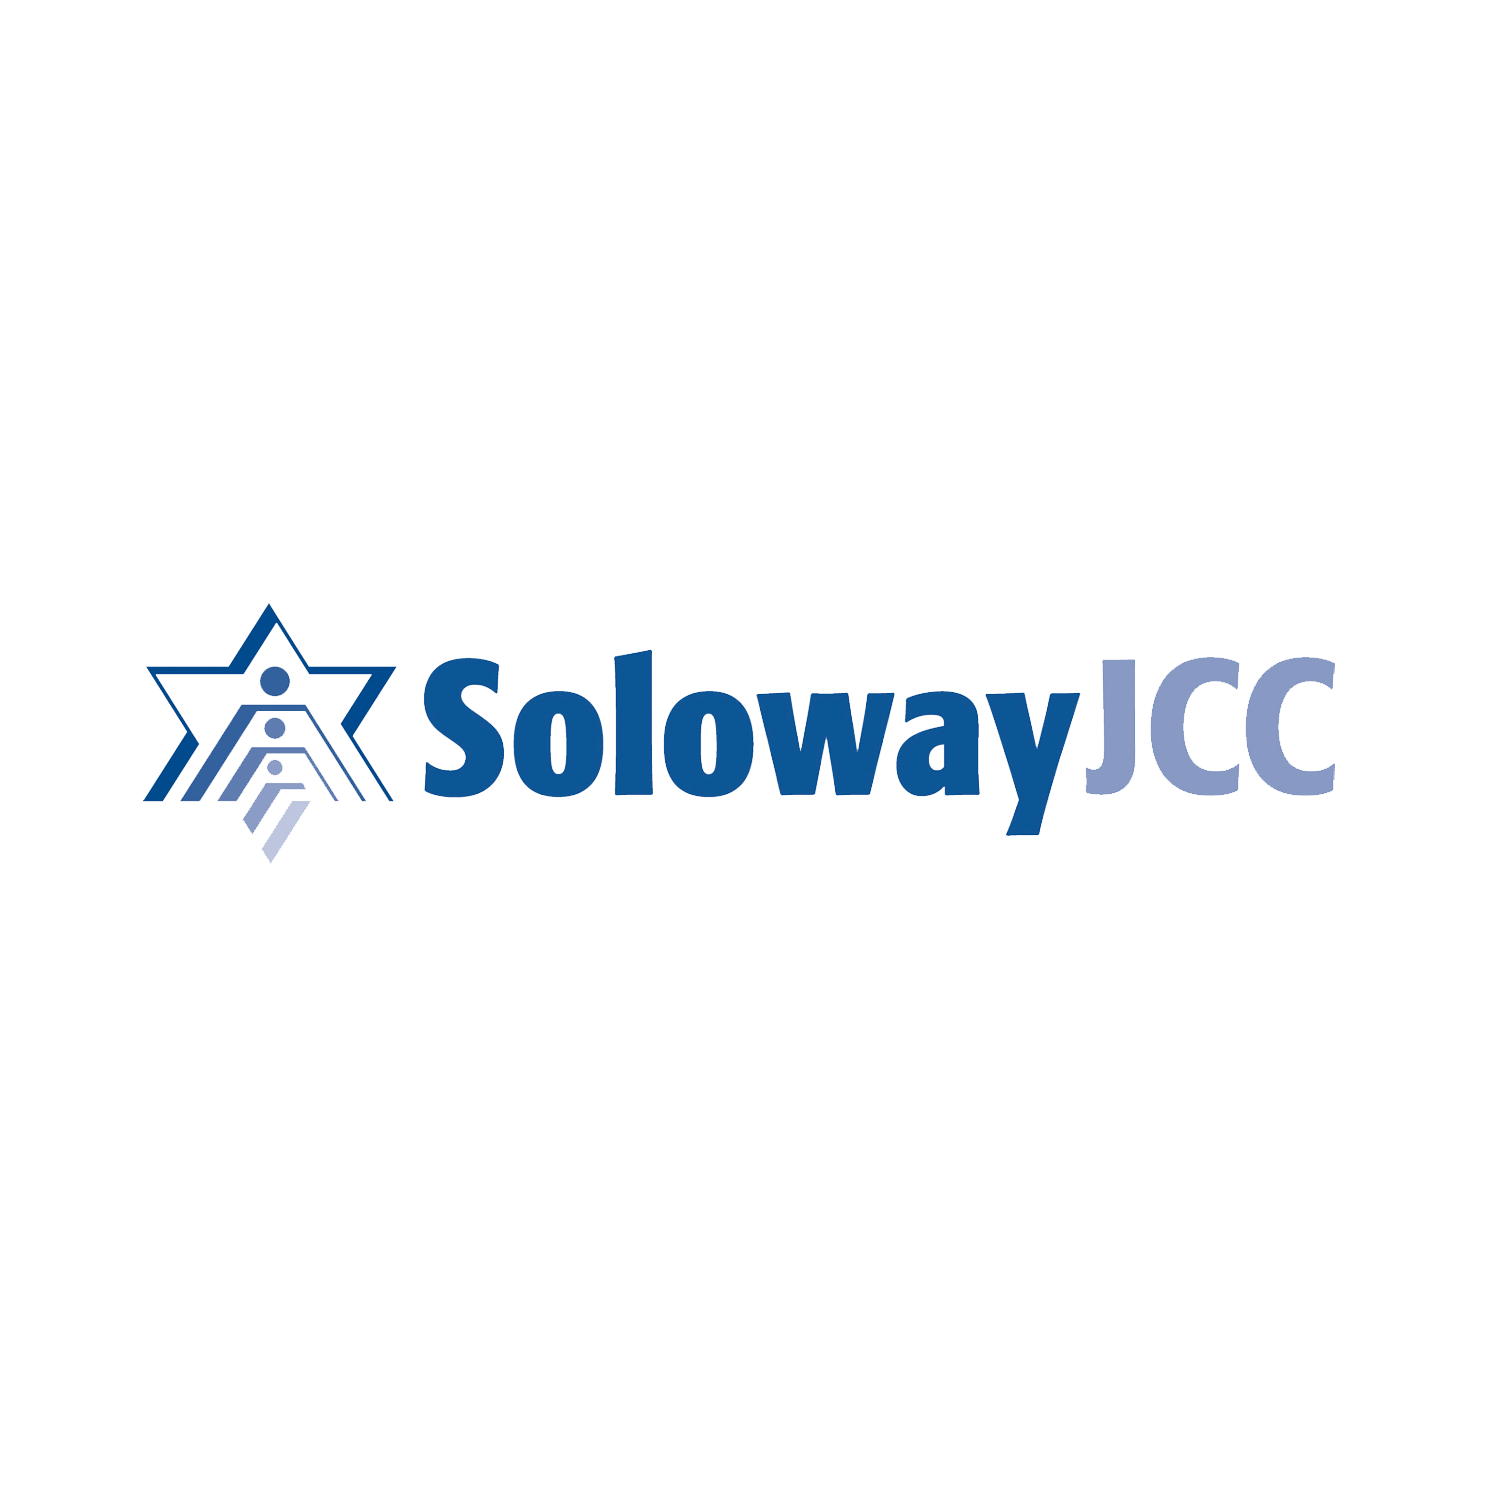 Soloway_logo.png